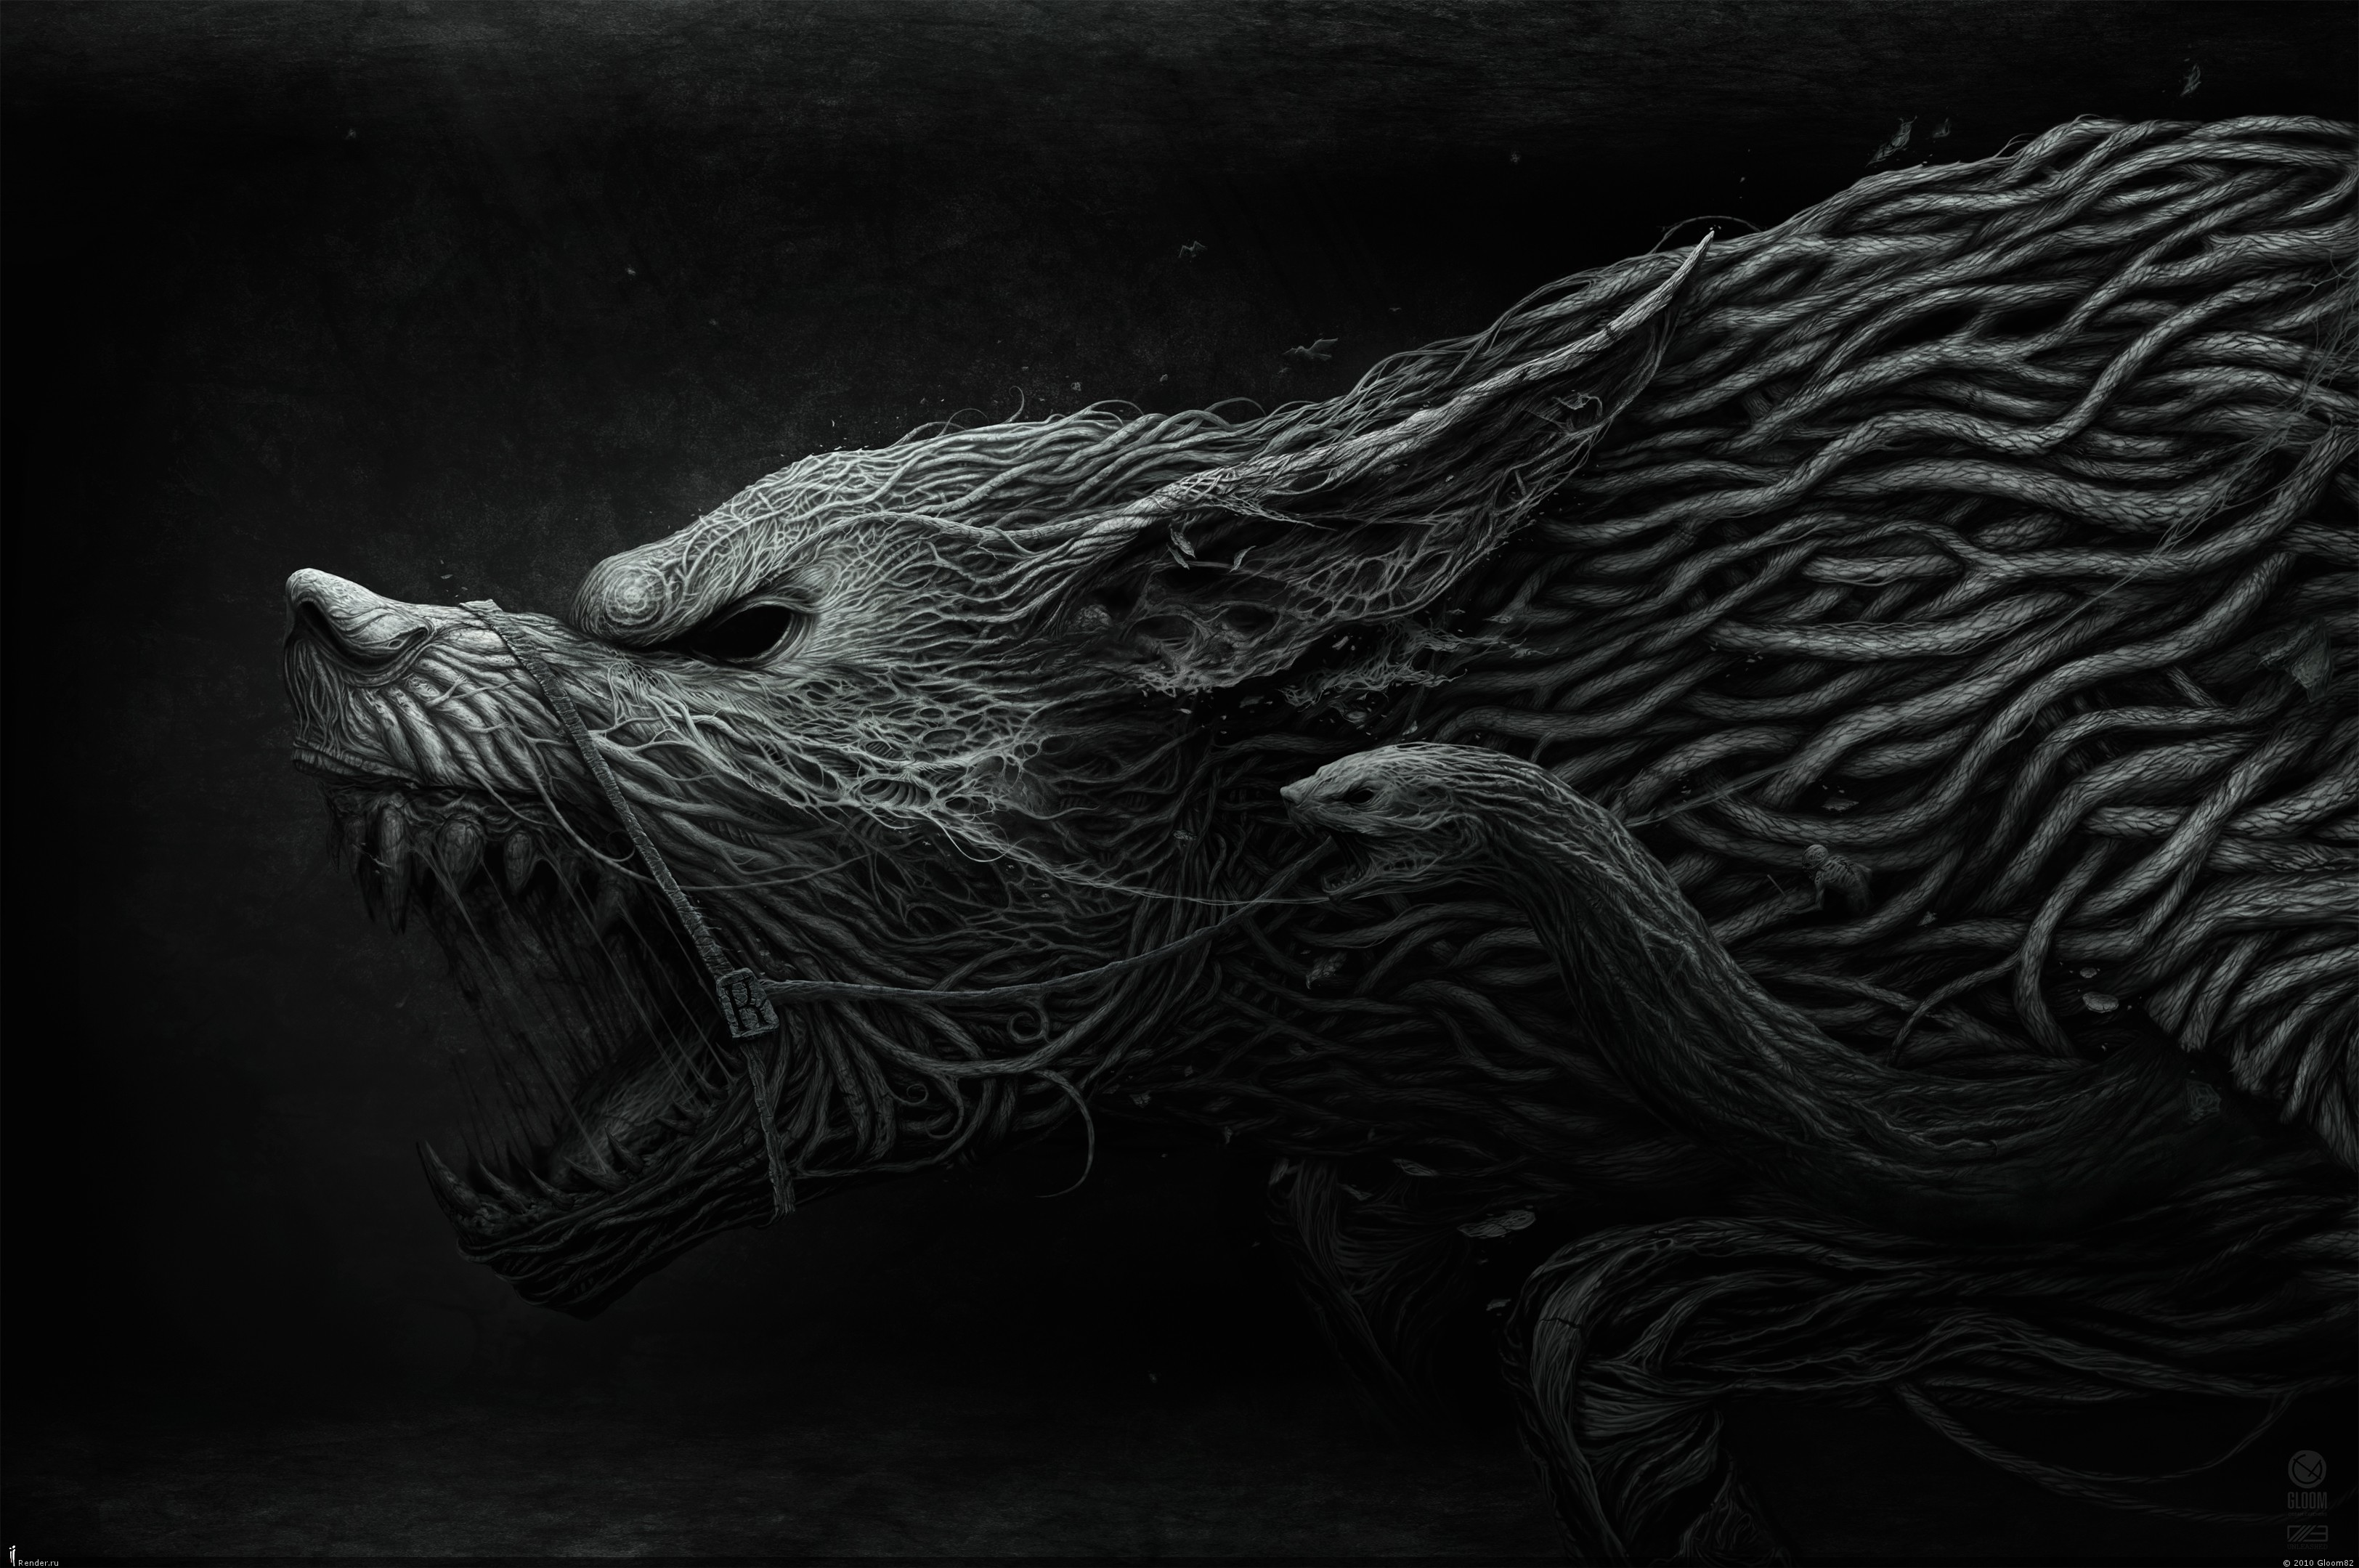 Anton Semenov - Black dream.jpg